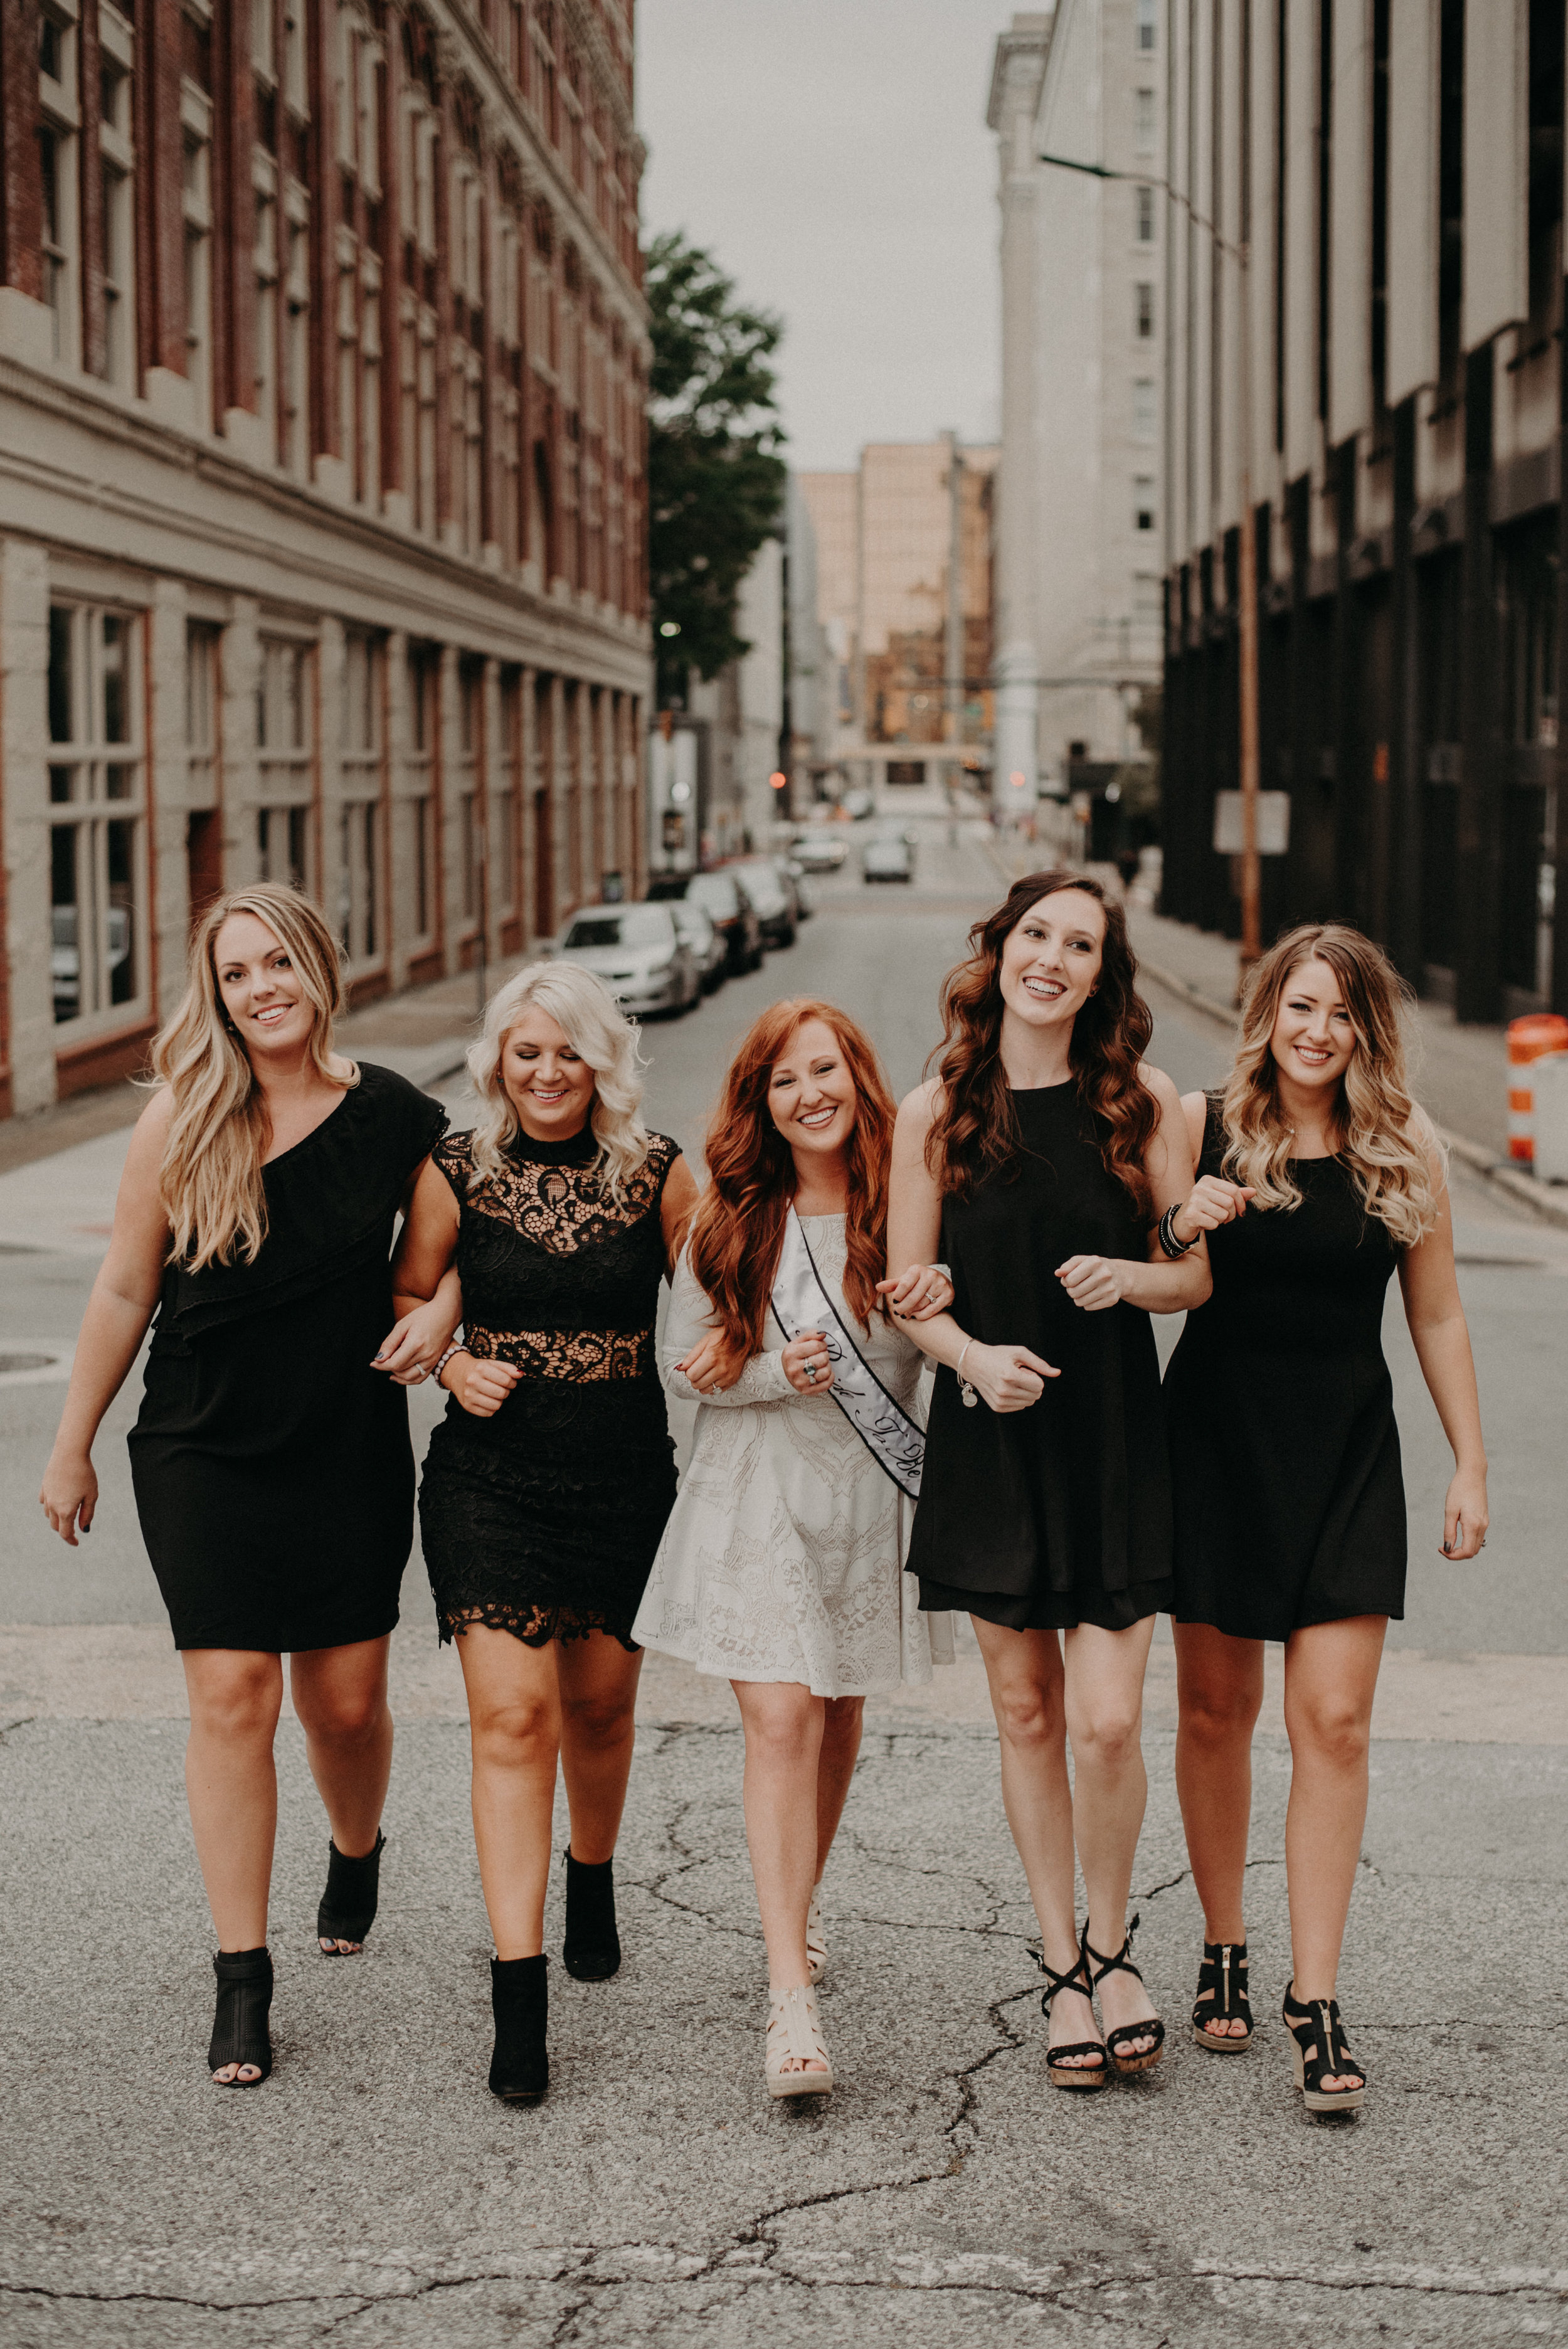 Bachelorette party portrait session in Chattanooga, Tennessee